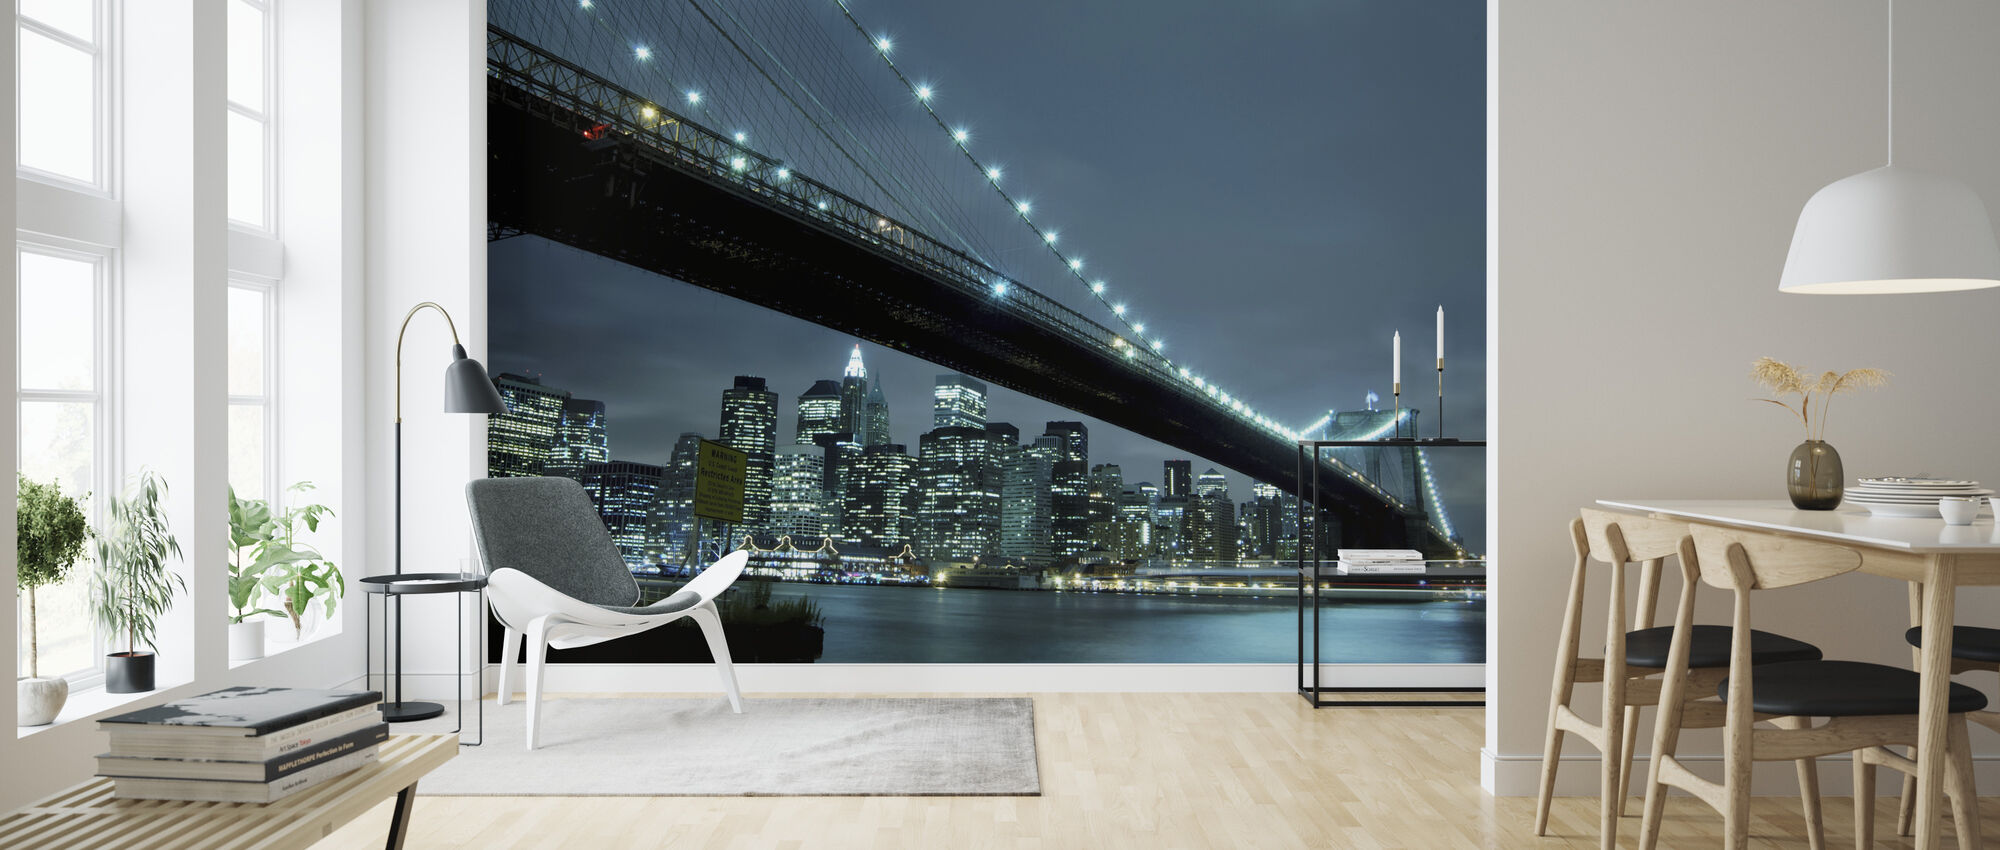 Brooklyn Bridge at Night - Wallpaper - Living Room